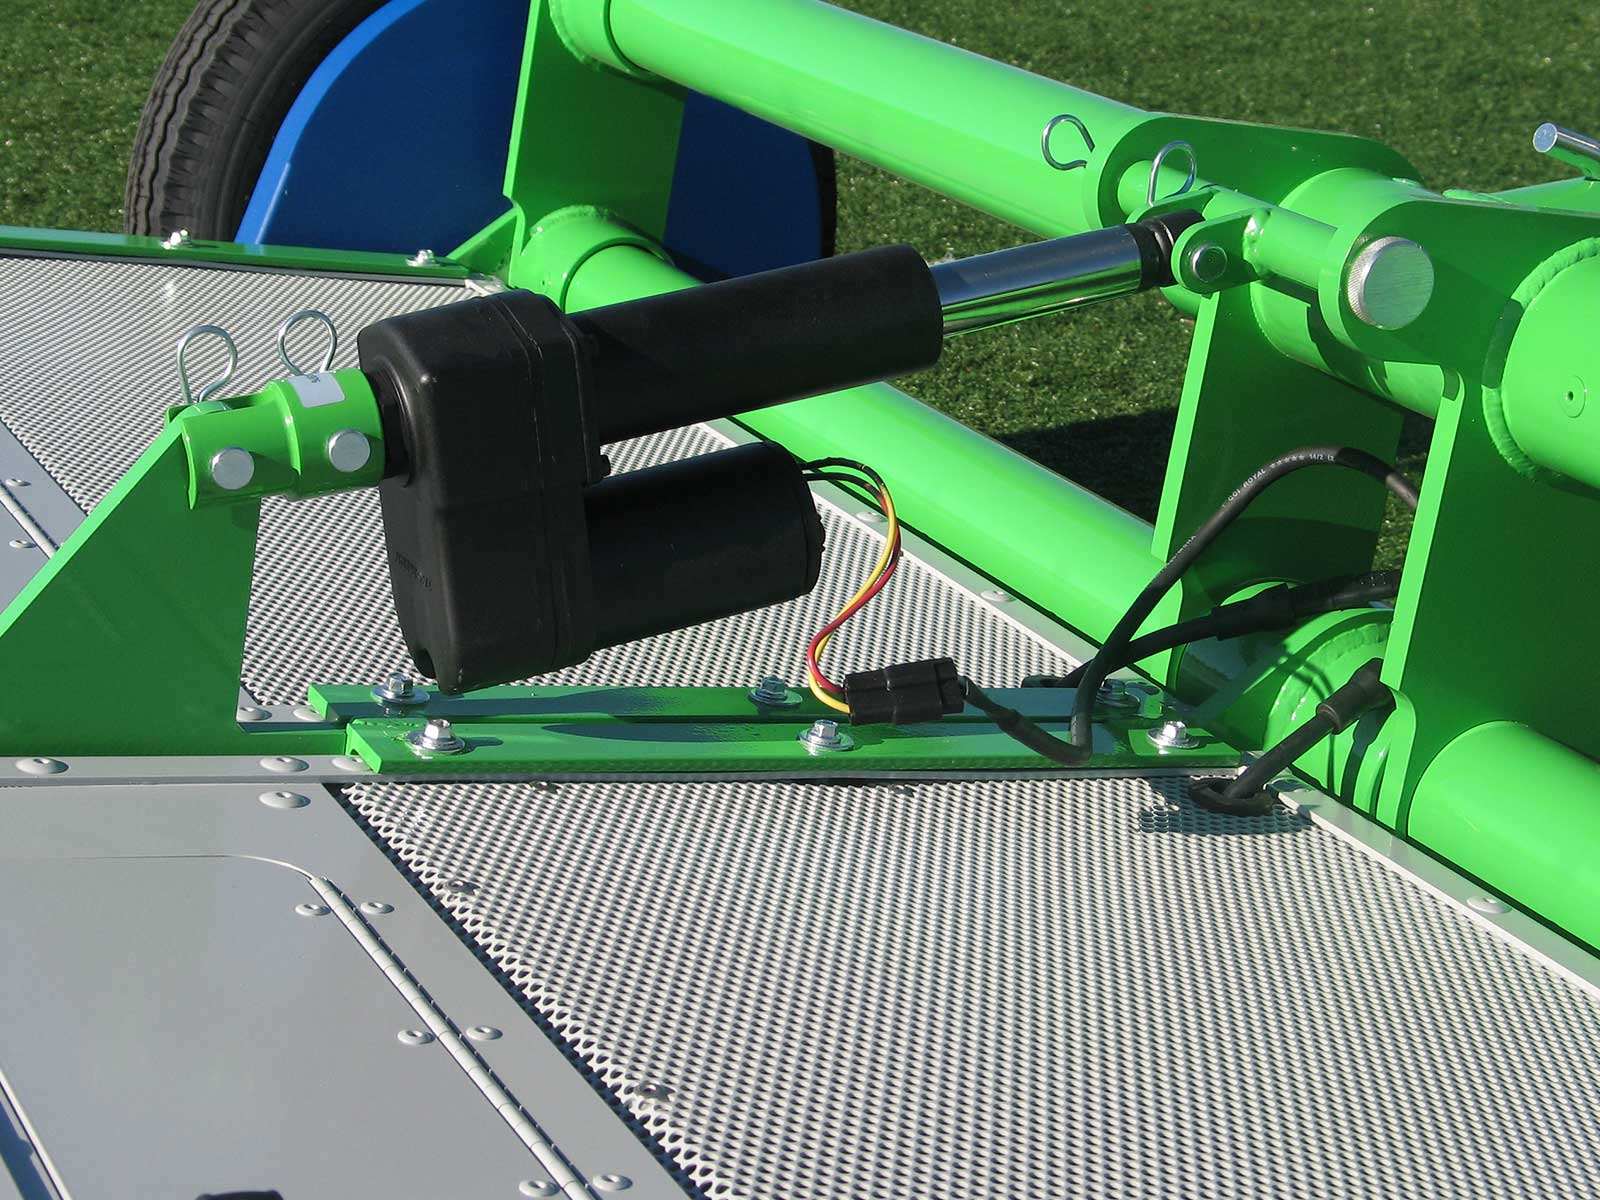 LitterKat Synthetic Turf Debris Collector